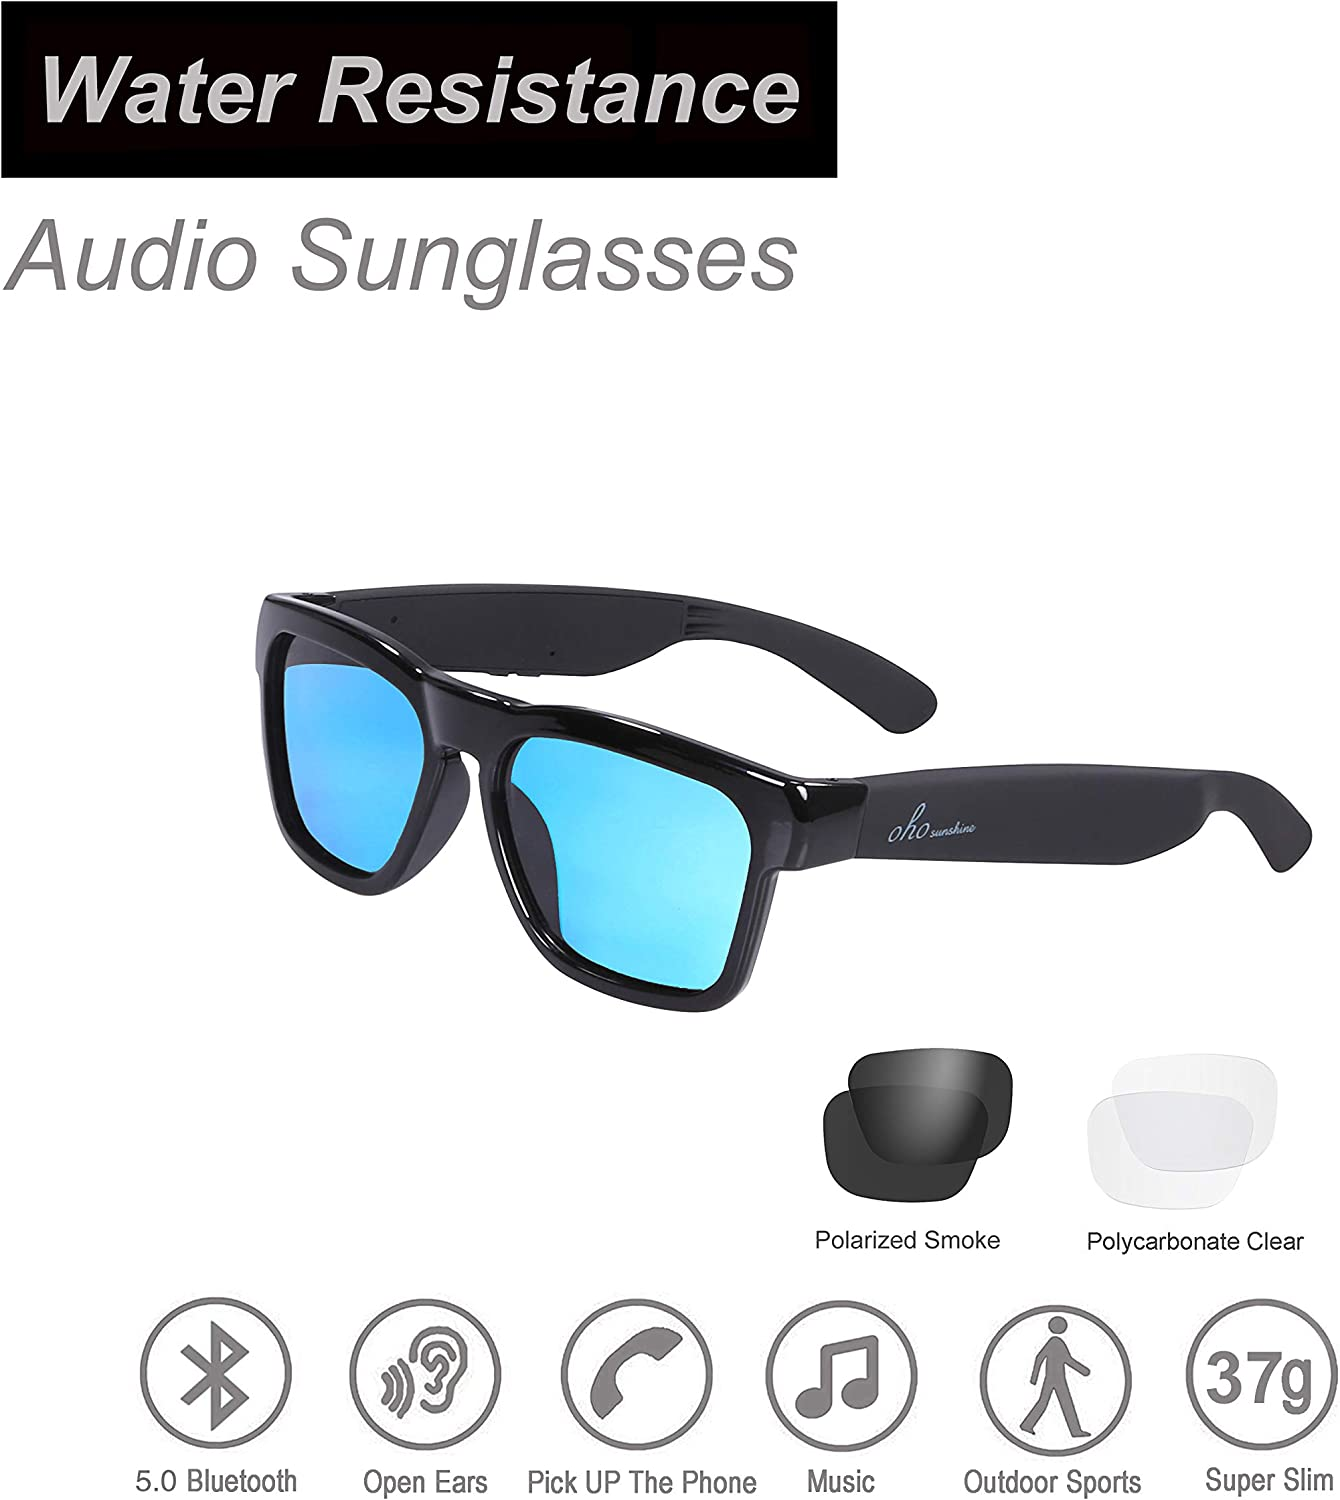 OhO sunshine Audio Sunglasses, Voice Control and Open Ear Style Listen Music and Calls with Volumn UP and Down, Bluetooth 5.0 and IP44 Waterproof Feature for Outdoor Sports